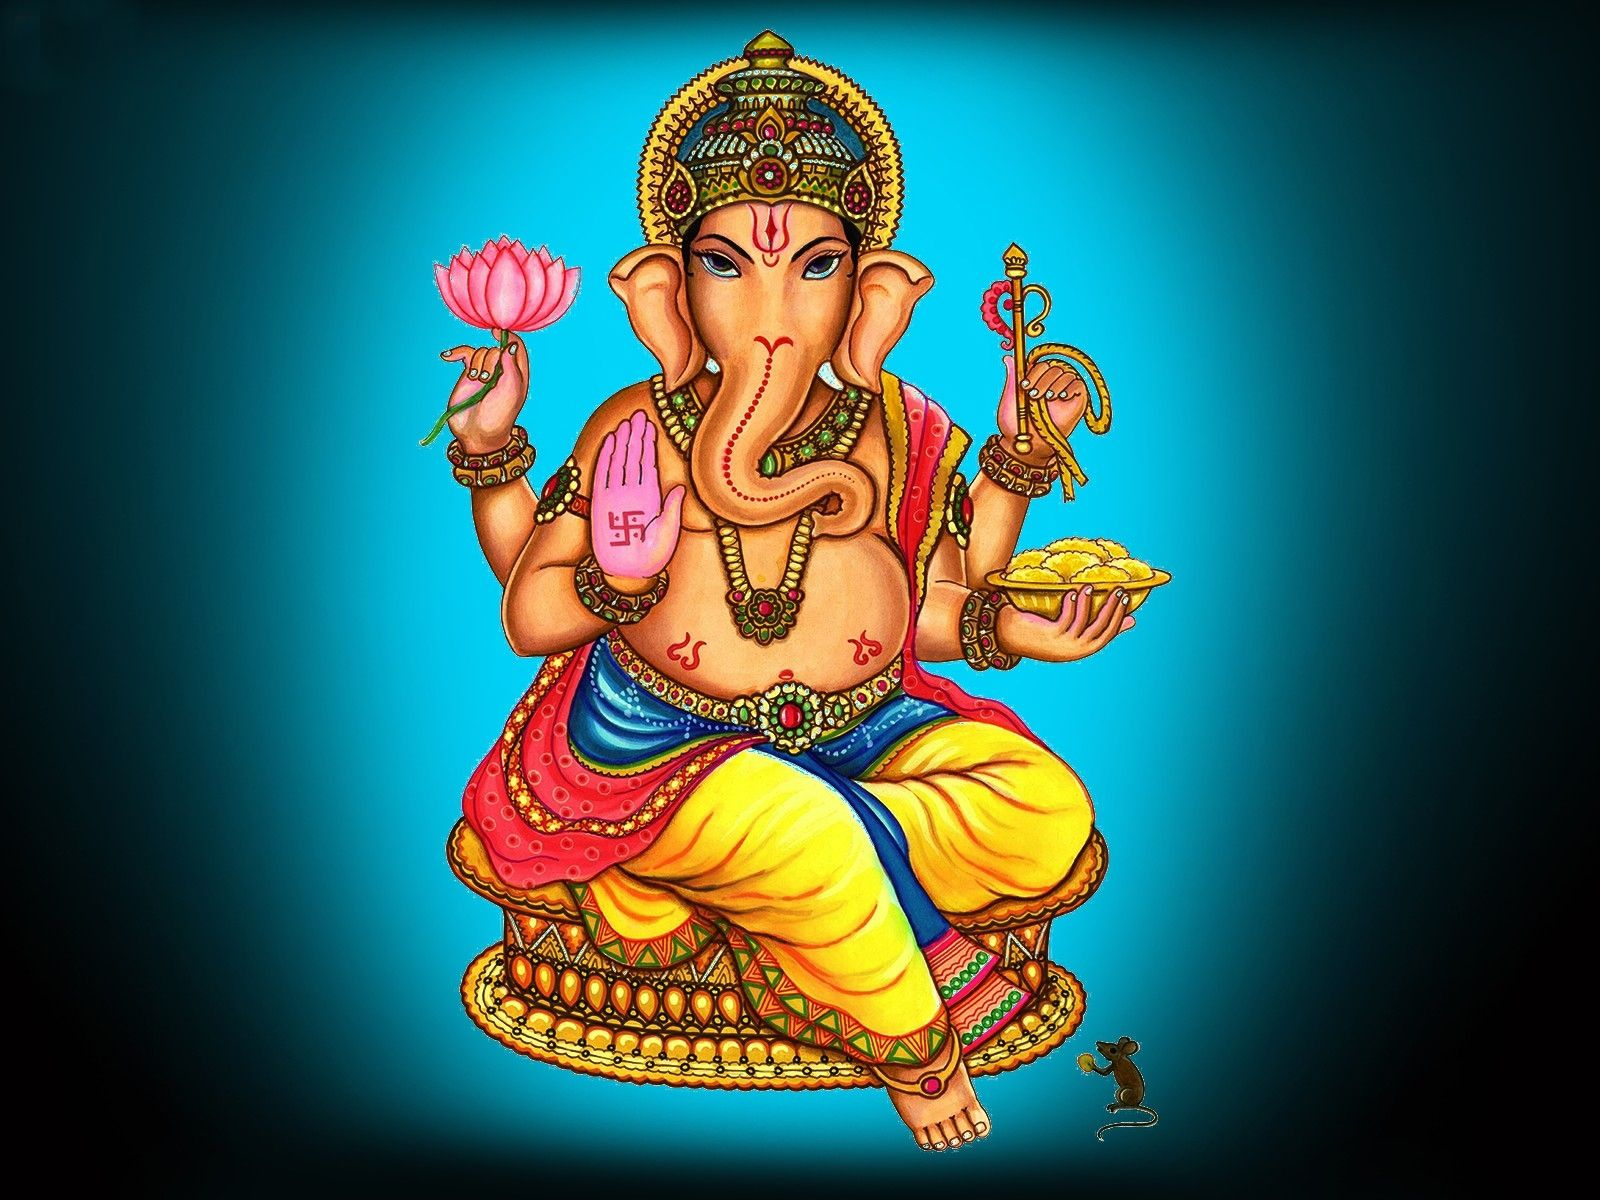 Shree Ganesh Hd Images: Ganesha Full Hd Wide Photo Wallpaper Pics 2015 1080p